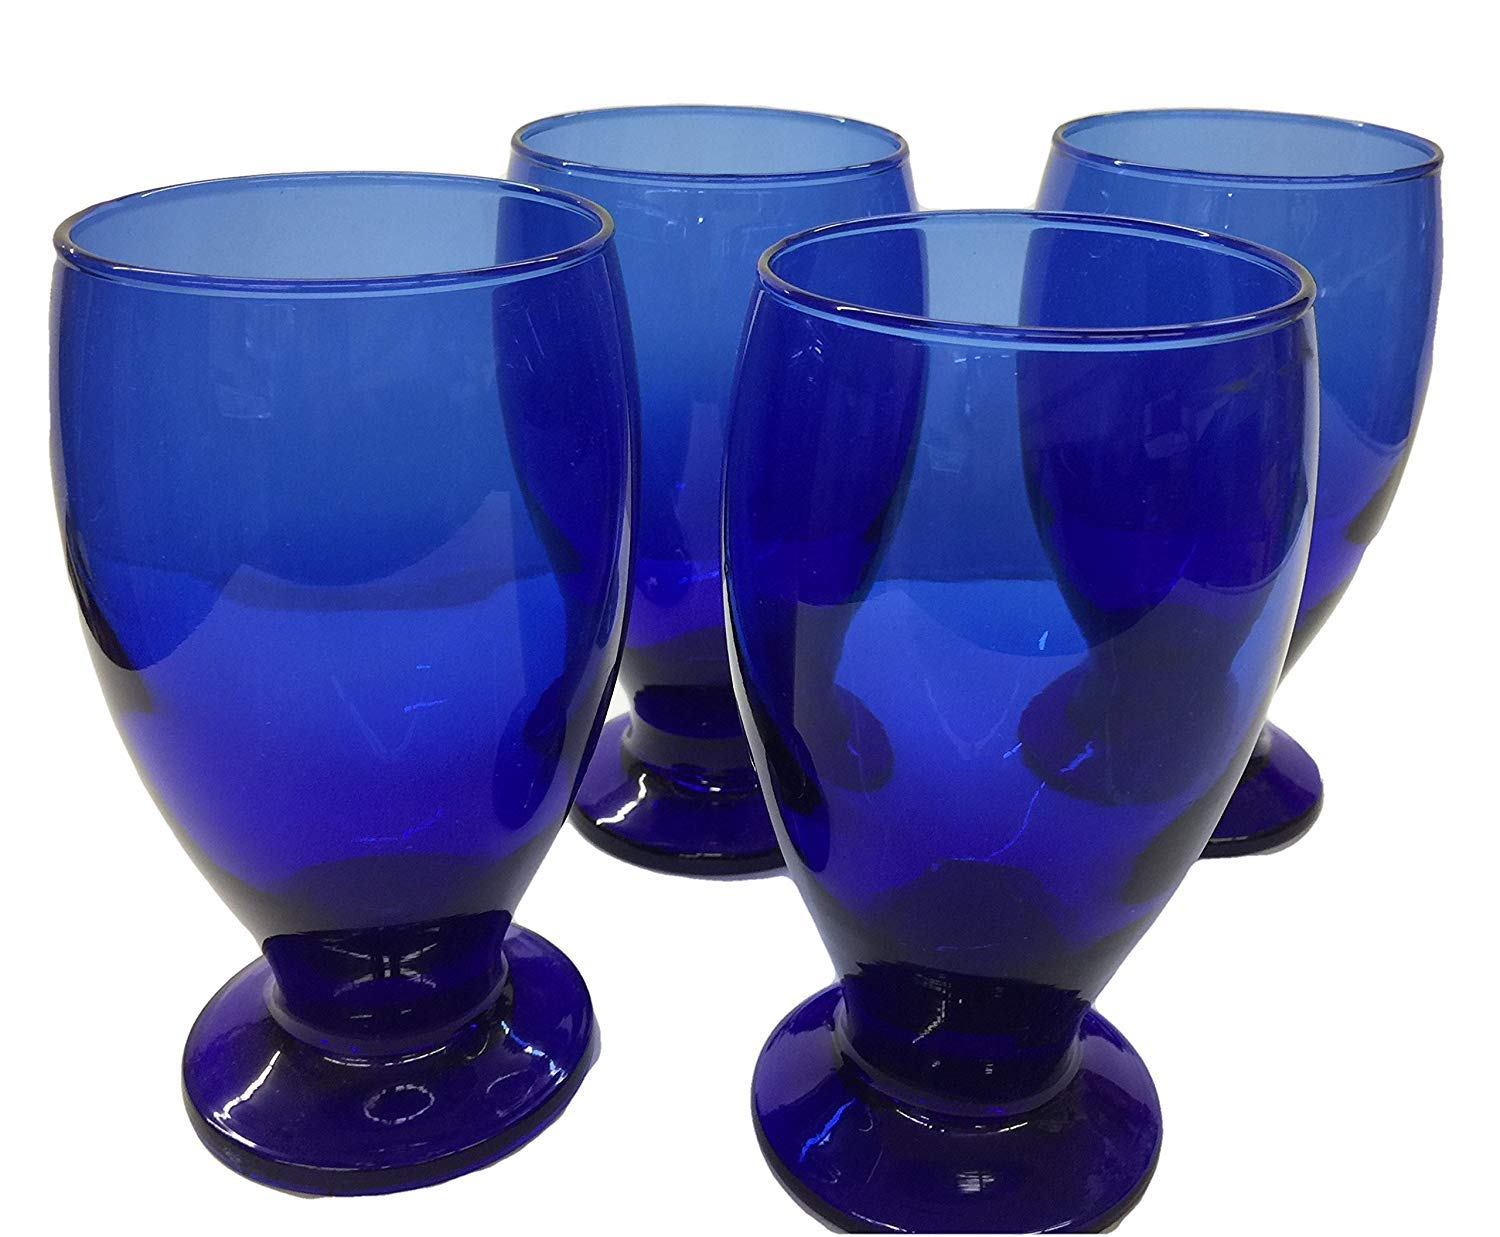 Water Goblets Wine goblets Water Glasses - Blue Cobalt Footed Glassware -Goblets, Unique Design, Great for Serving: Wine, Water, Cocktails or Juice. Great as Decoration or Table Set. (2) USA_Glassware